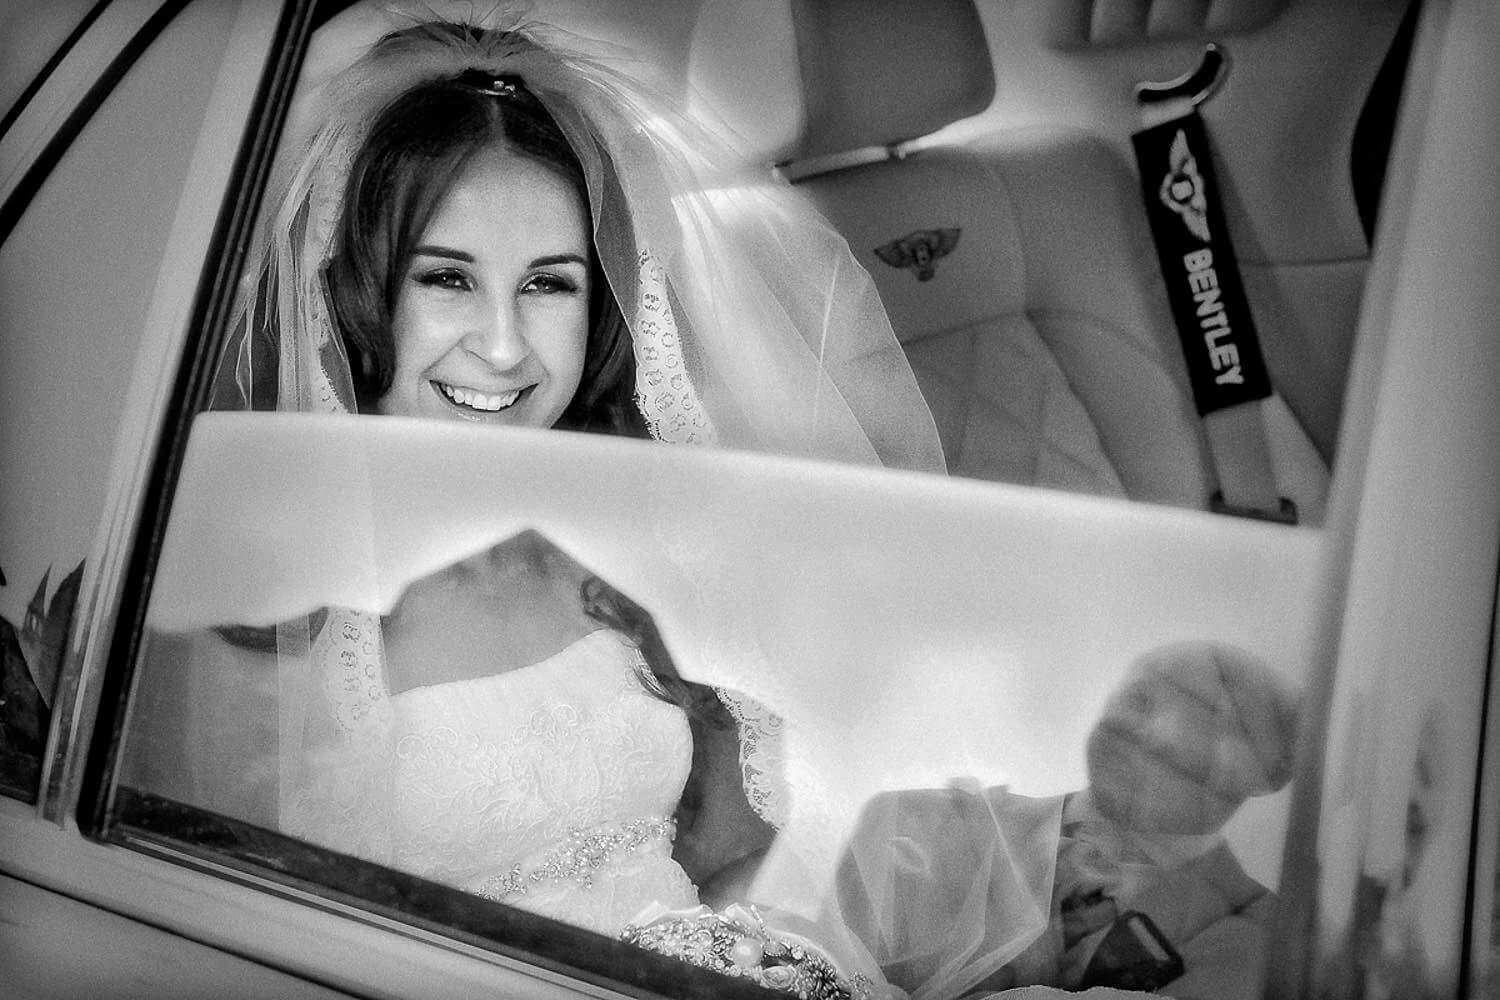 Black and white photo of bride through car window